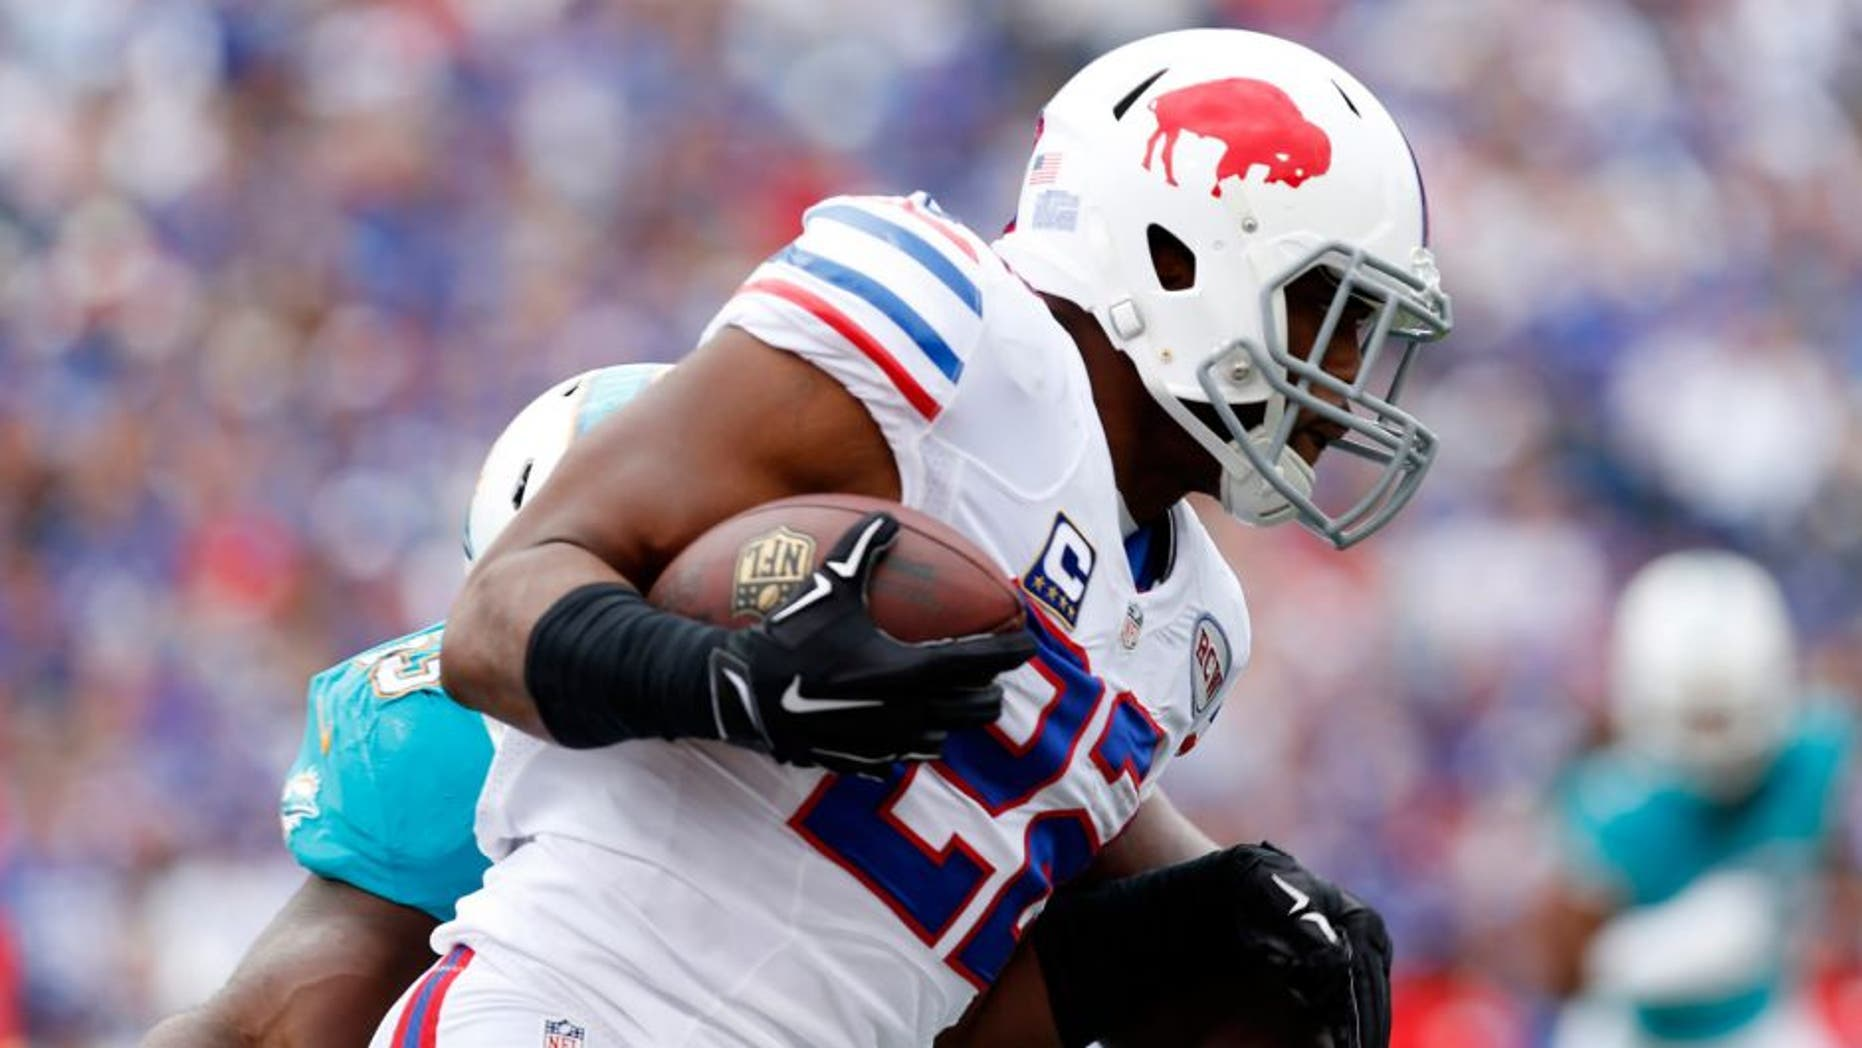 Sep 14, 2014; Orchard Park, NY, USA; Buffalo Bills running back Fred Jackson (22) runs after a catch during the first quarter against the Miami Dolphins at Ralph Wilson Stadium. Mandatory Credit: Kevin Hoffman-USA TODAY Sports